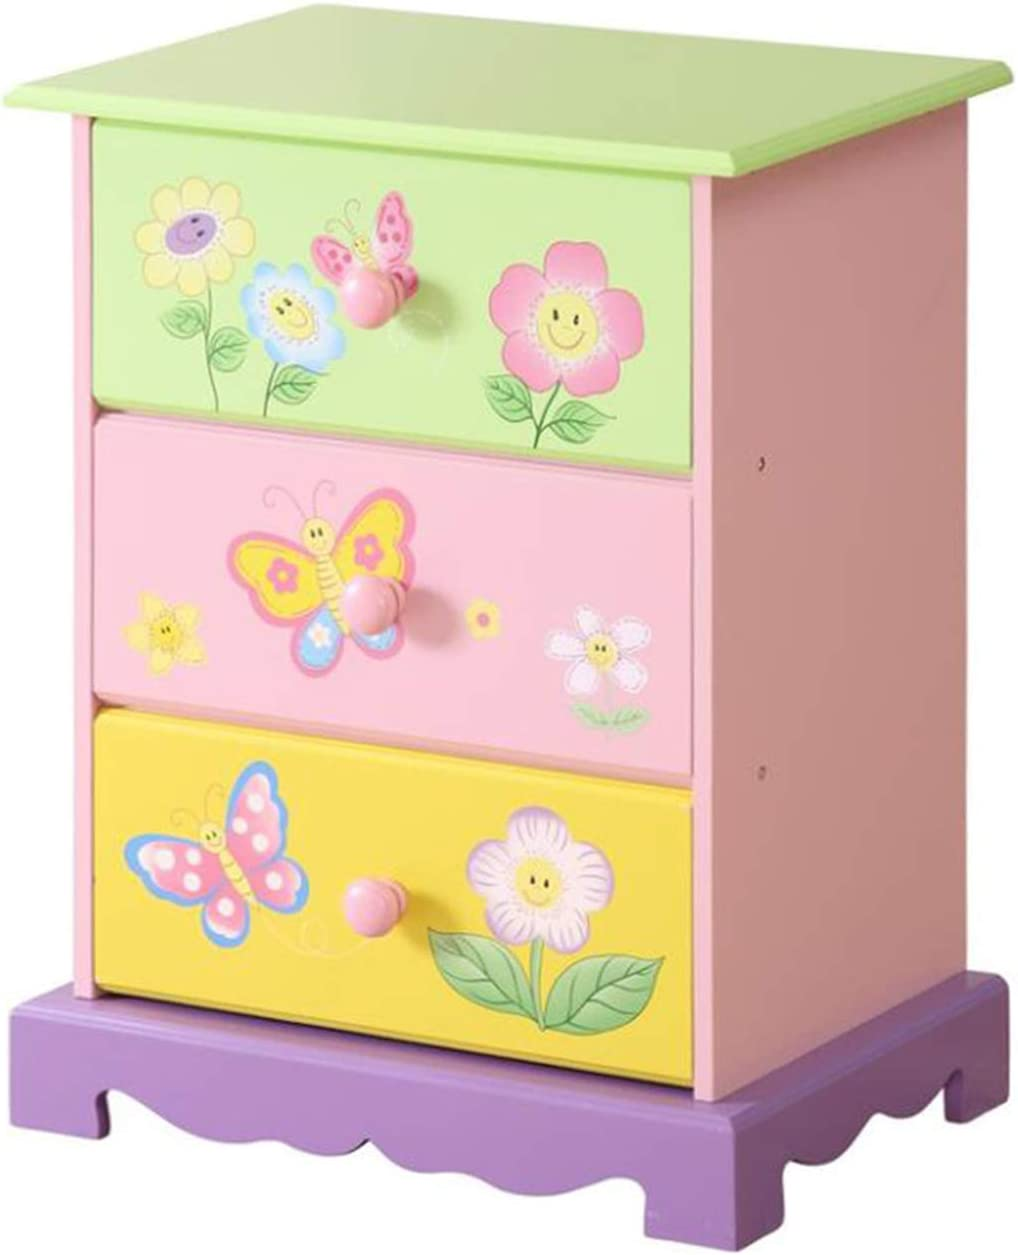 WODENY Children Storage Cabinet Drawers Wooden Kids' Furniture Organizer with Butterfly Flower Paintings Colorful (Storage Drawer)